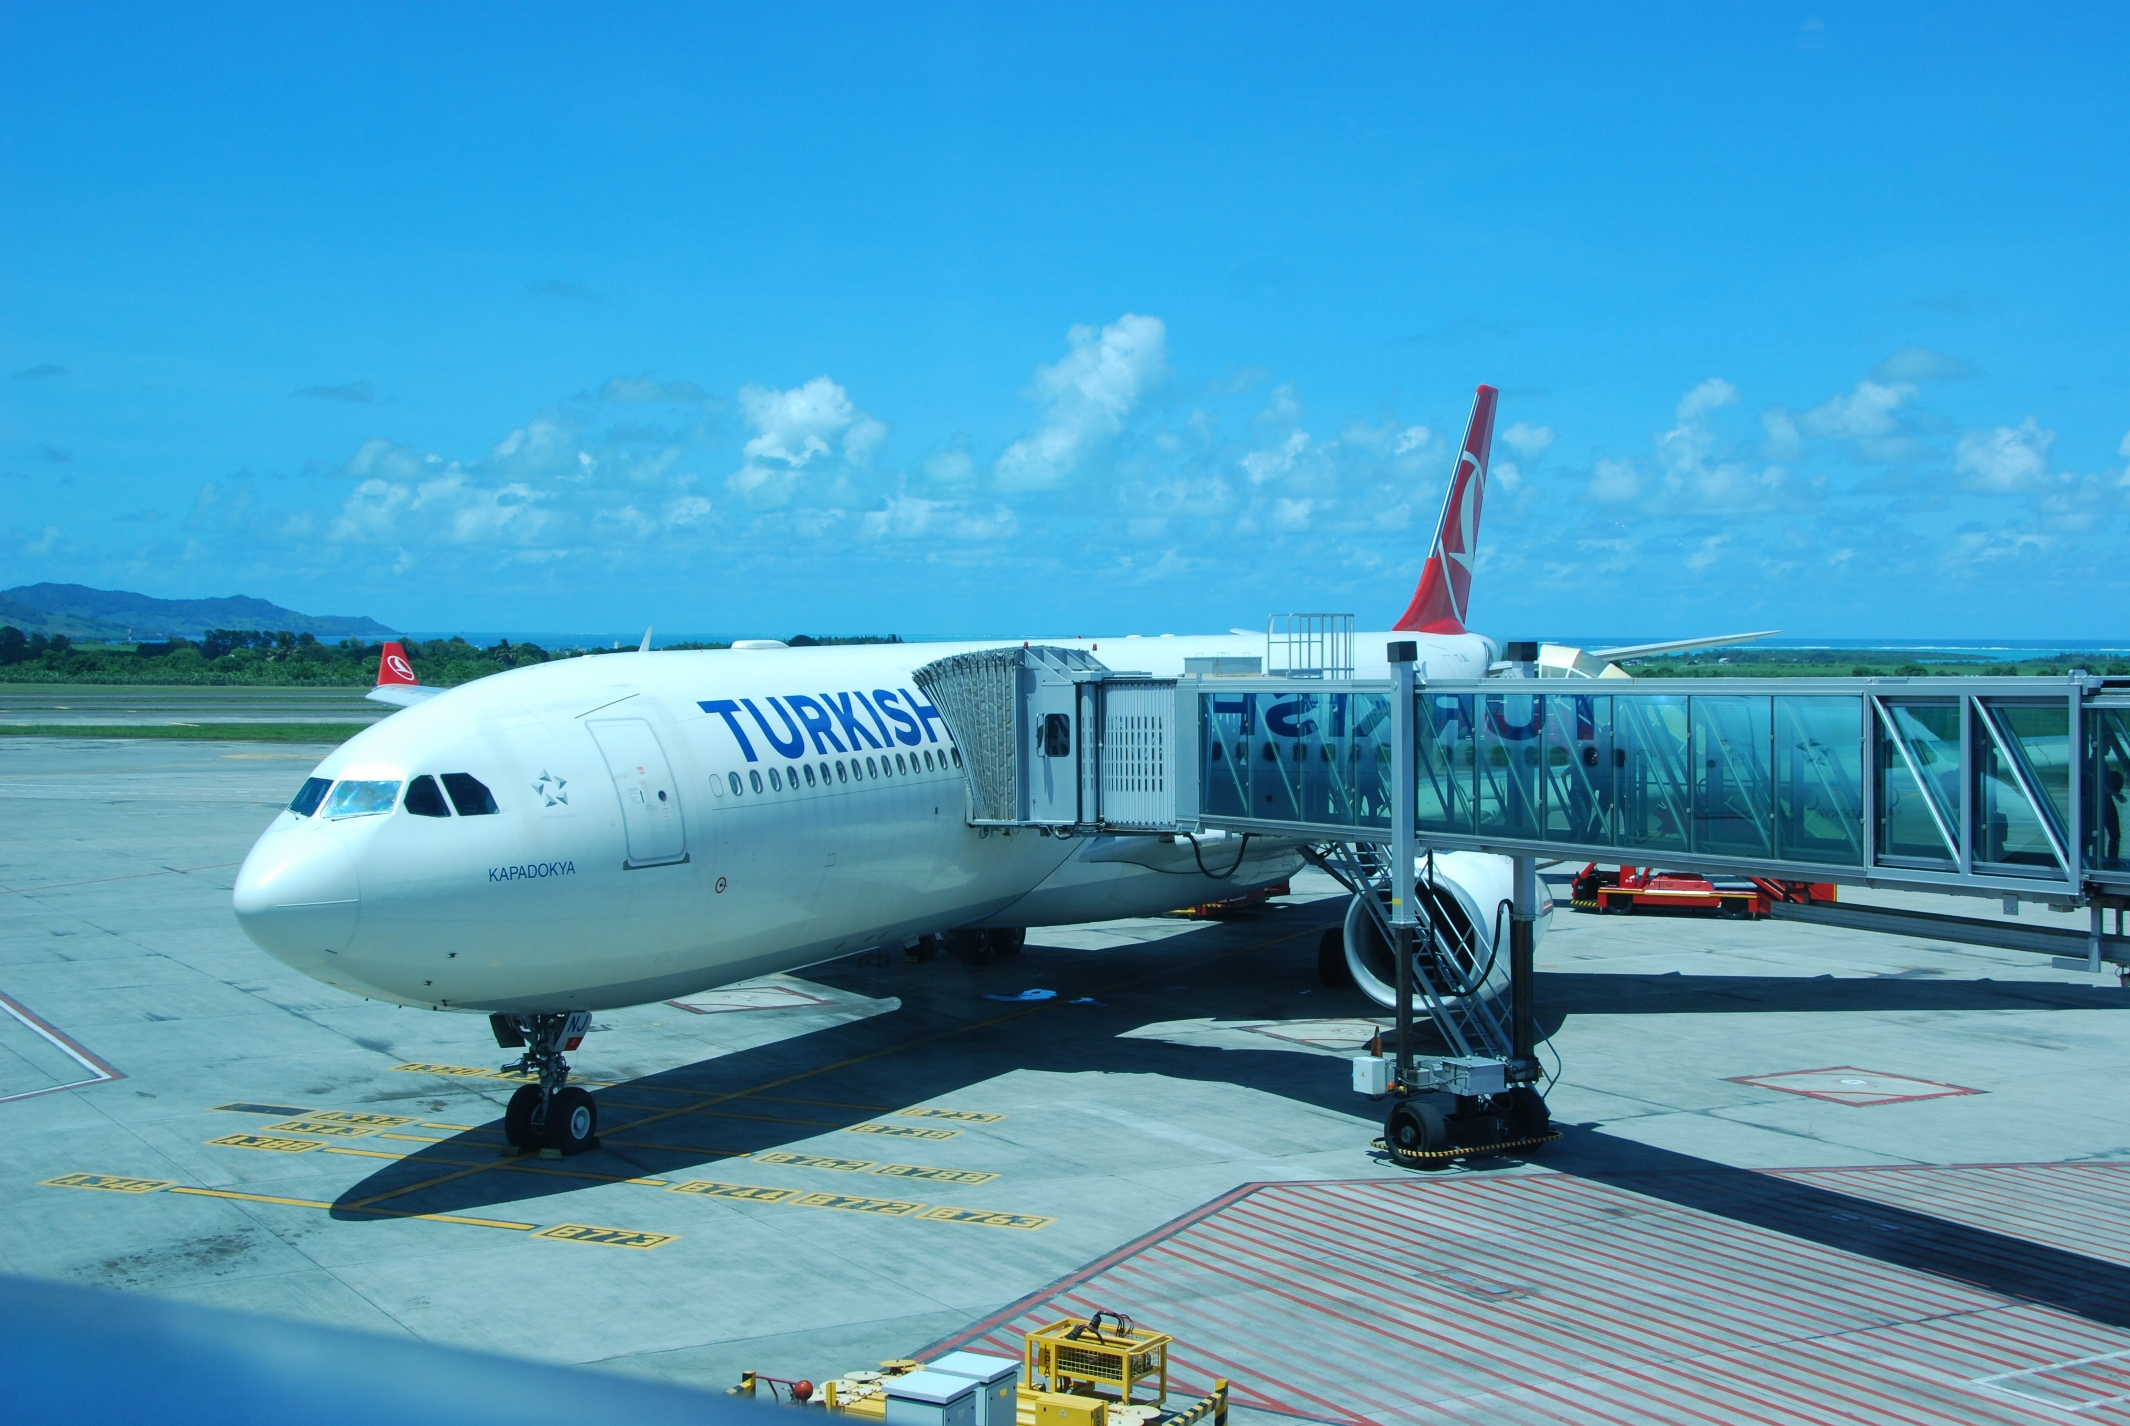 THY_Turkish Airlines_Airbus A330_Mauritius Airport_Jan 2016